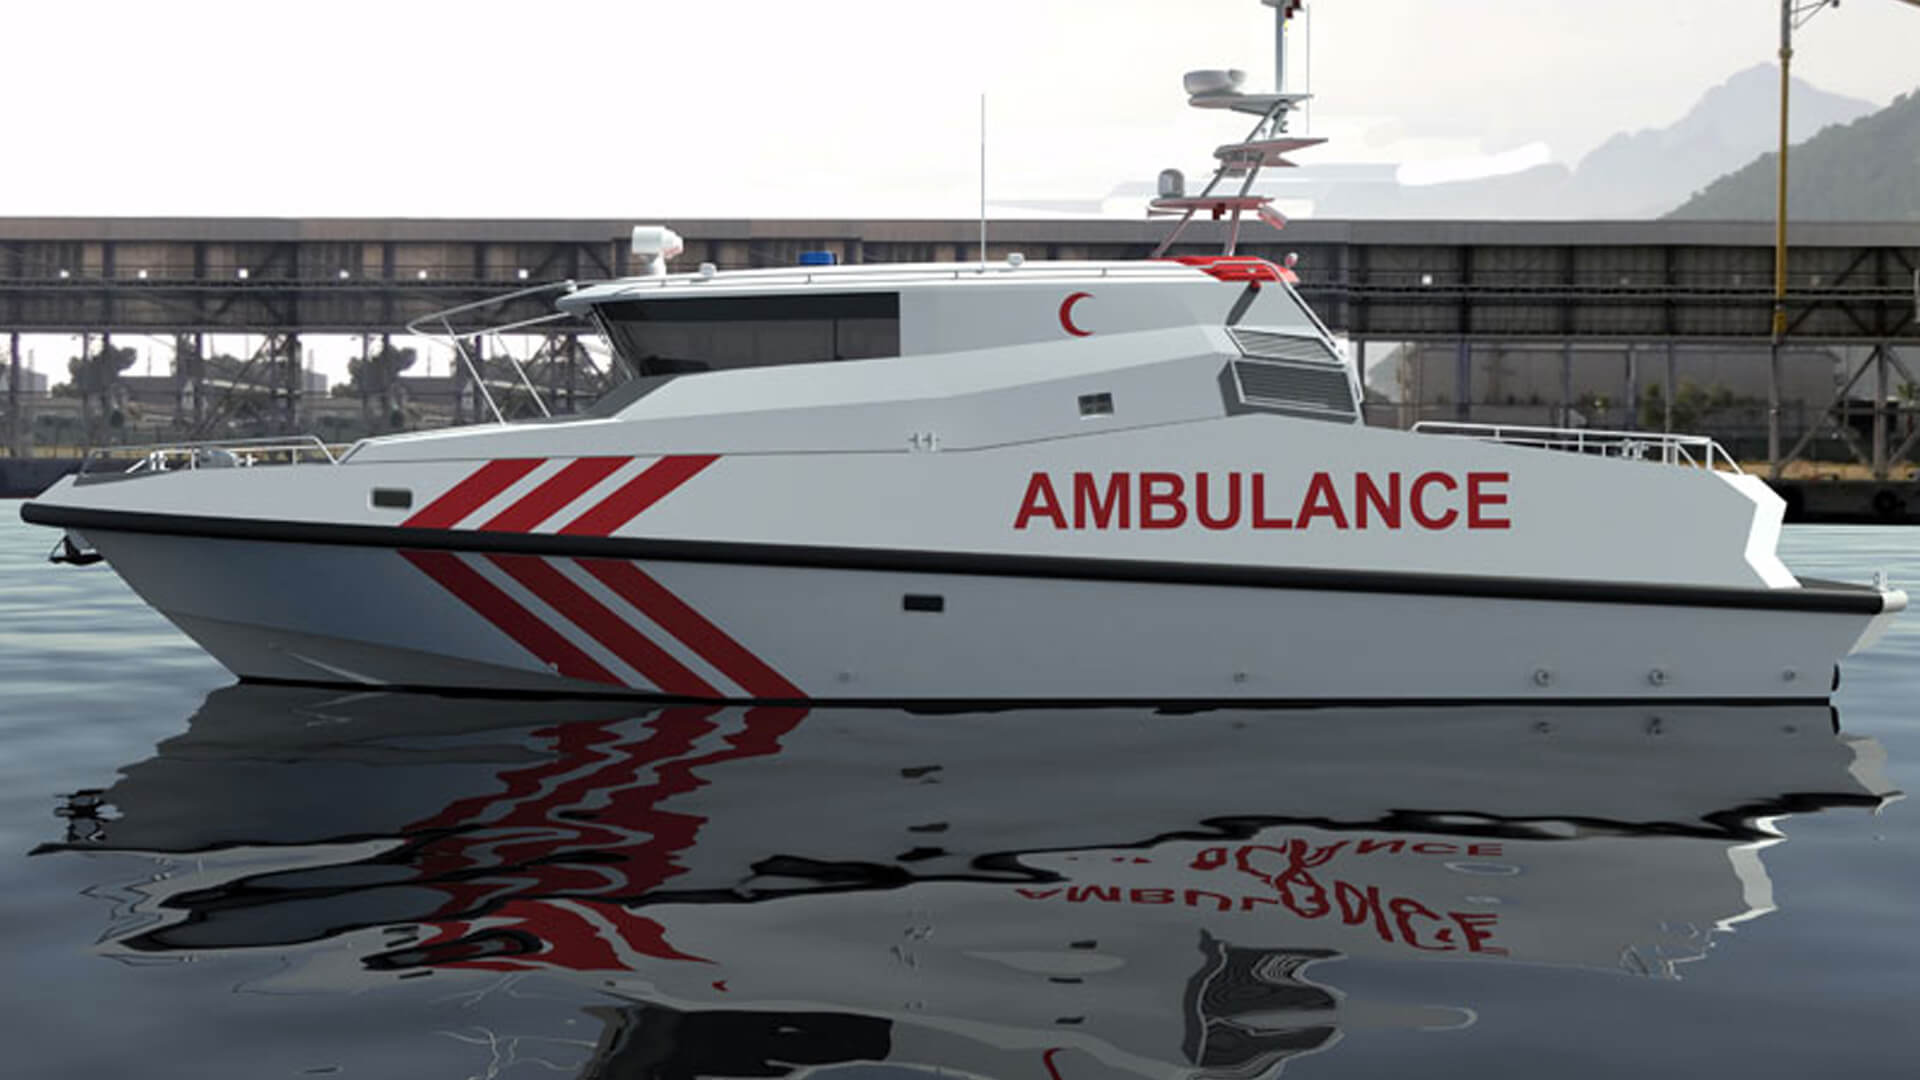 images/vessels/03-utility-support-craft/01-sar-ambulance-boats/02-ares-58-ambulance/01.jpg